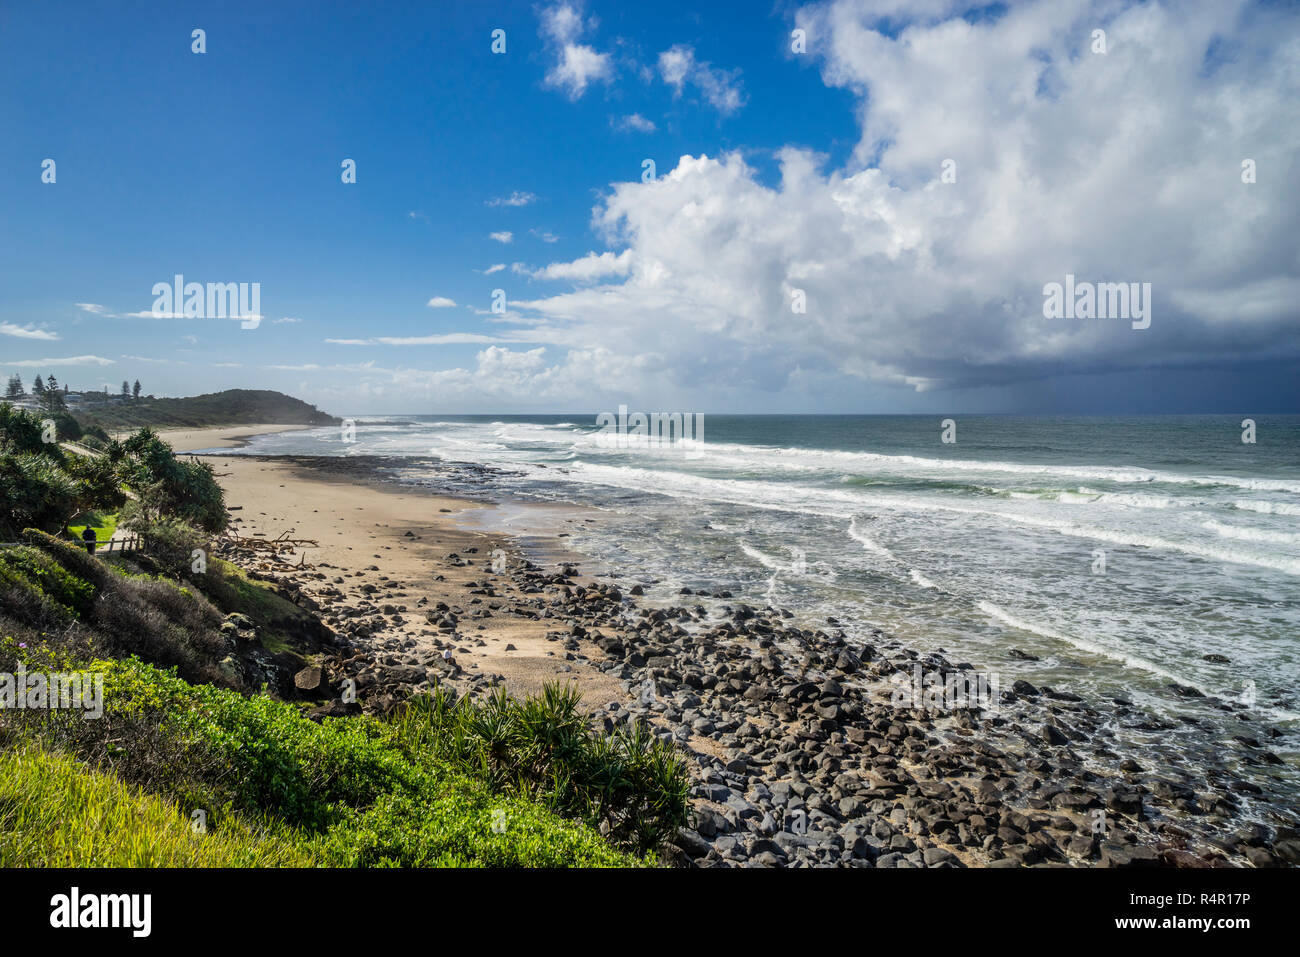 view of Shelly Beach from Ballina Head lookout, East Ballina, Northern Rivers region, New South Wales, Australia - Stock Image